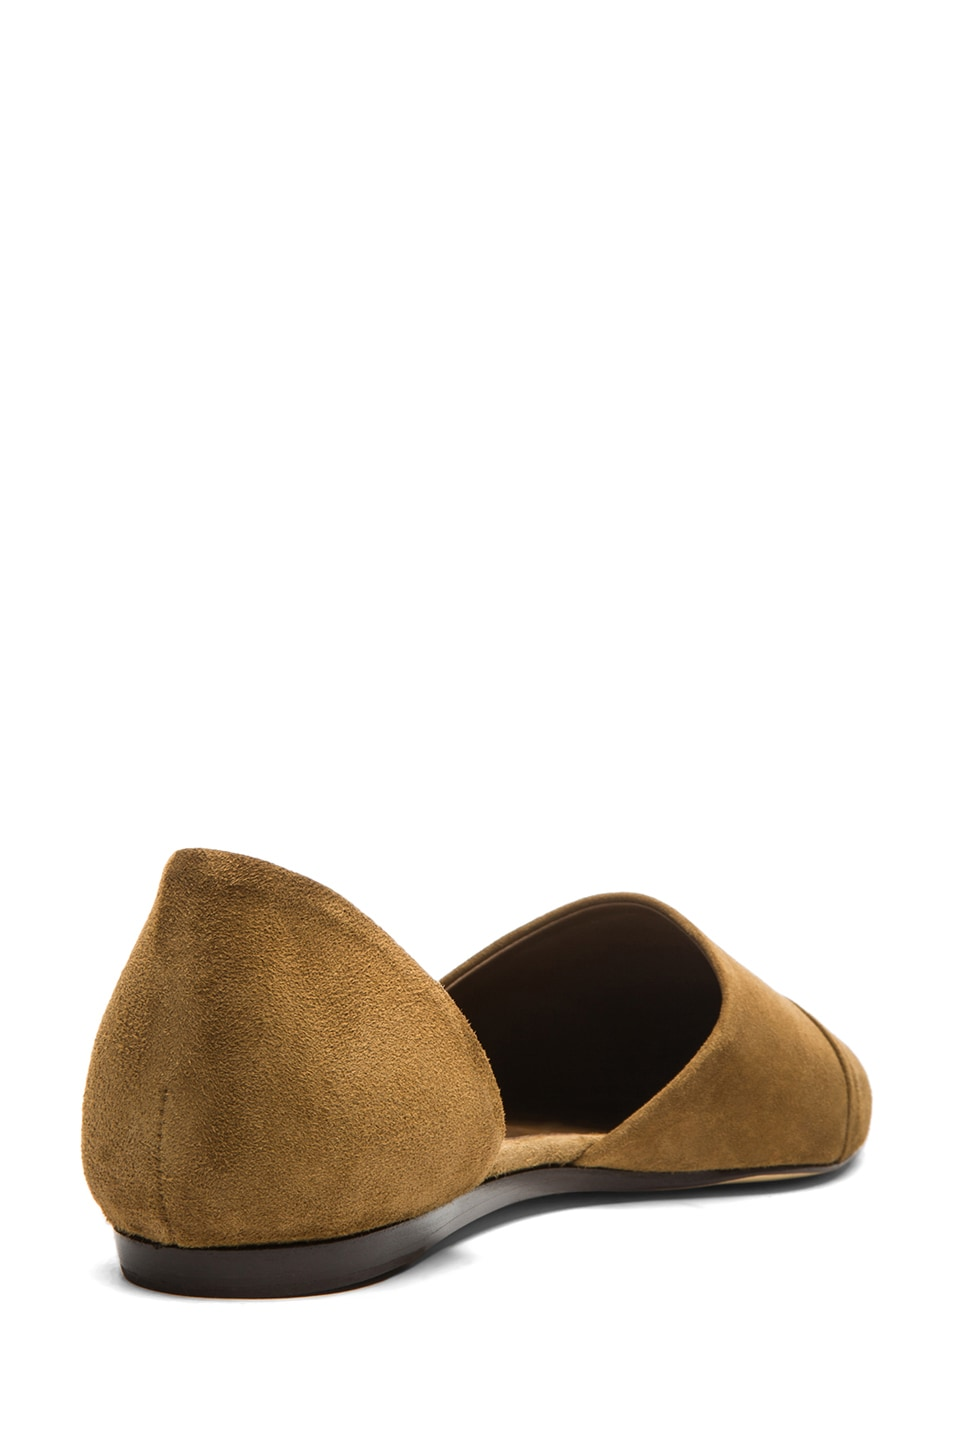 Image 3 of Jenni Kayne D'orsay Suede Flat in Bark